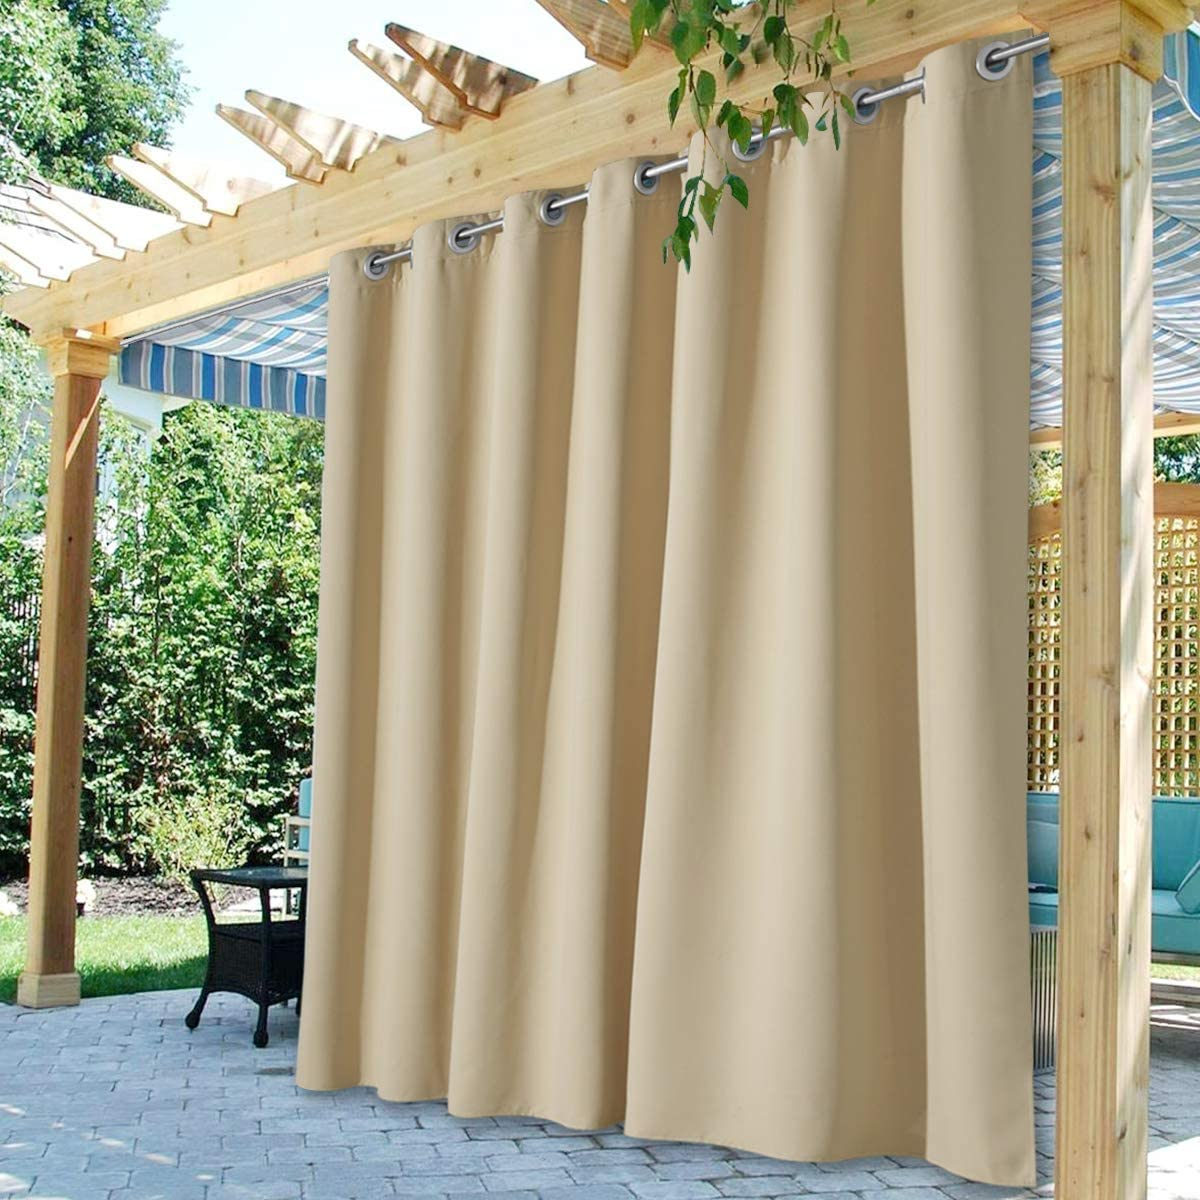 Waterproof Outdoor Curtain Panels Extra Wide Blackout Patio Beige Farmhouse Curtains Custom 1 Panel